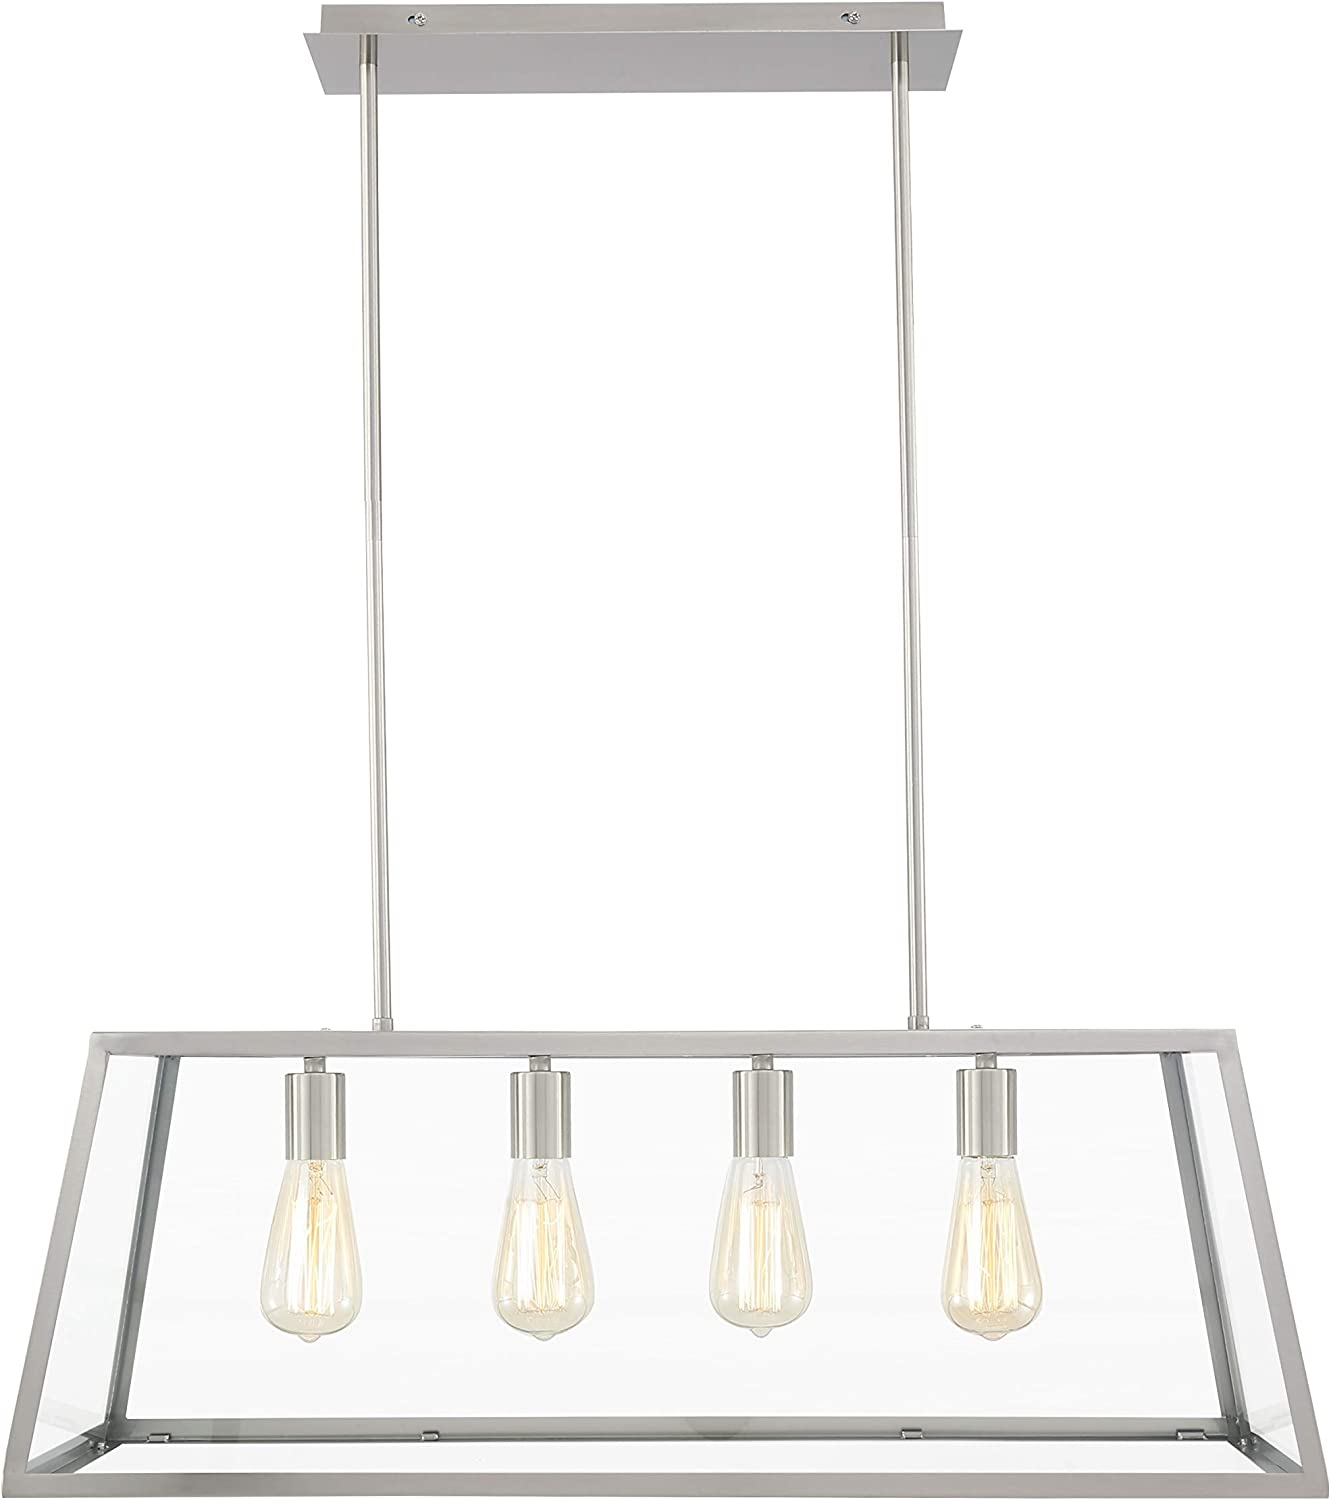 Light Society Morley 4-Light Kitchen Island Pendant, Satin Nickel Shade with Clear Glass Panels, Modern Industrial Chandelier (LS-C104-SN)